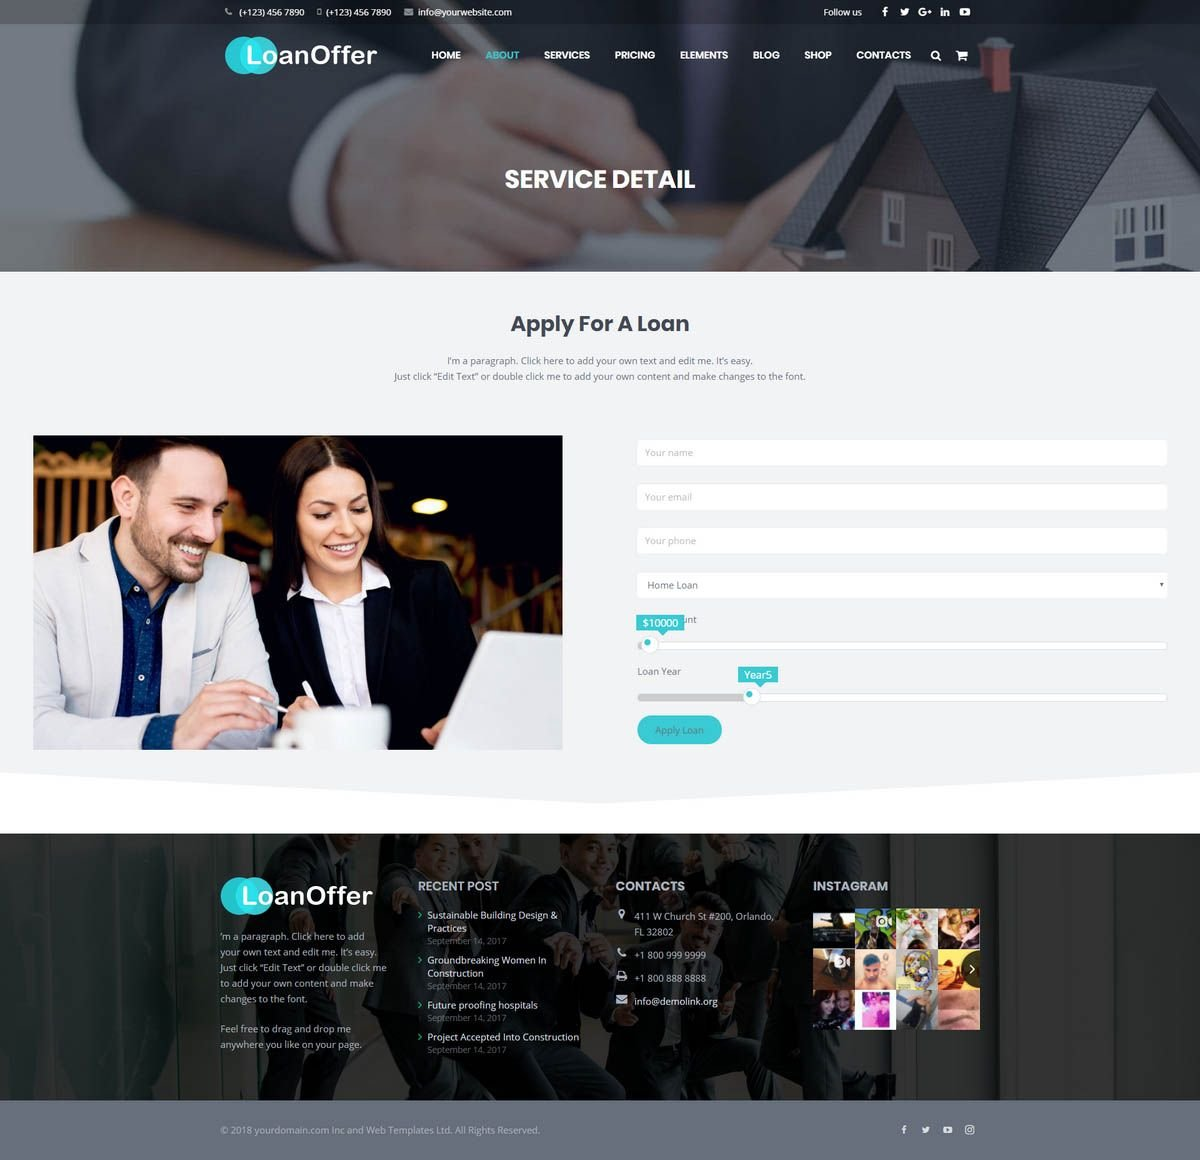 LoanOffer - Business Loan WordPress Theme Screenshot 4